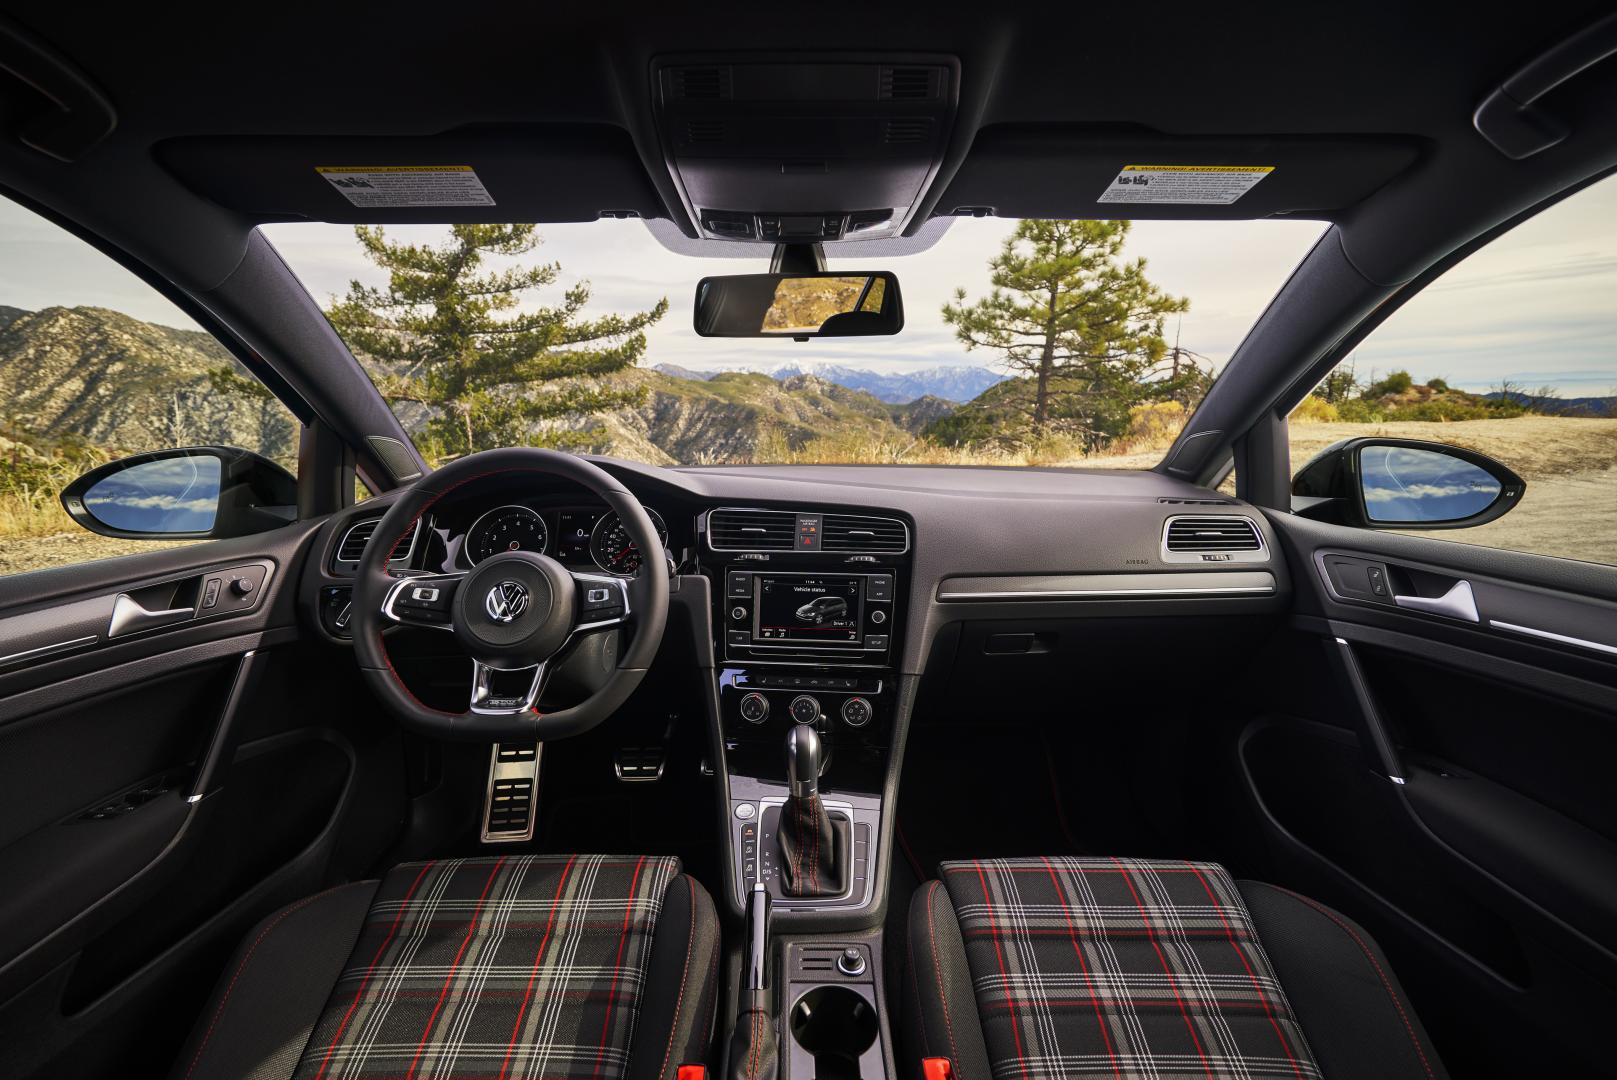 Volkswagen Golf GTI Rabbit Edition VS interieur tartan ruitjes clark